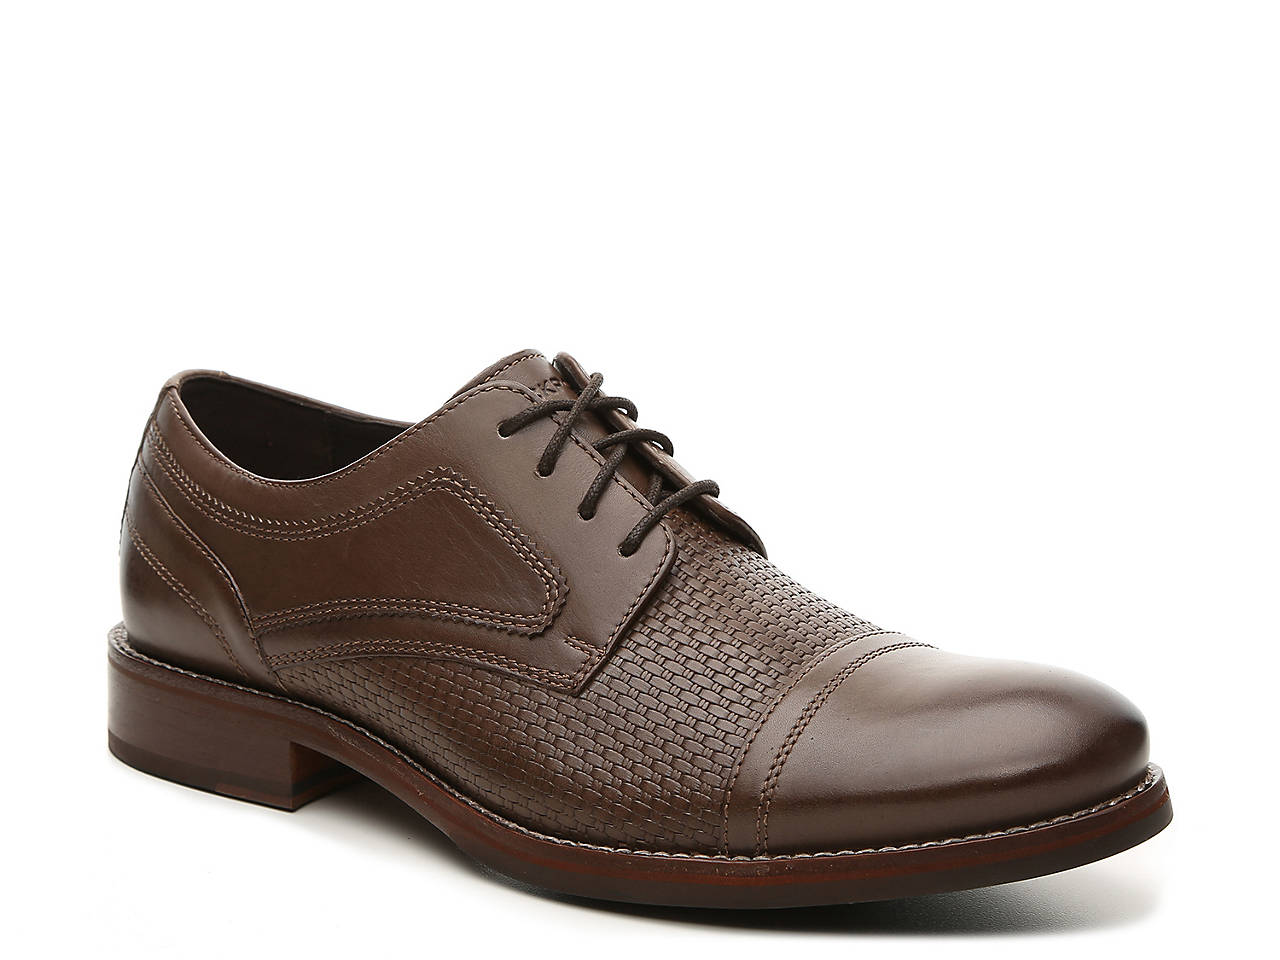 Rockport Wyat Plain Toe Discount From China Cheap Extremely Sast Cheap Price MfrCeRiJl